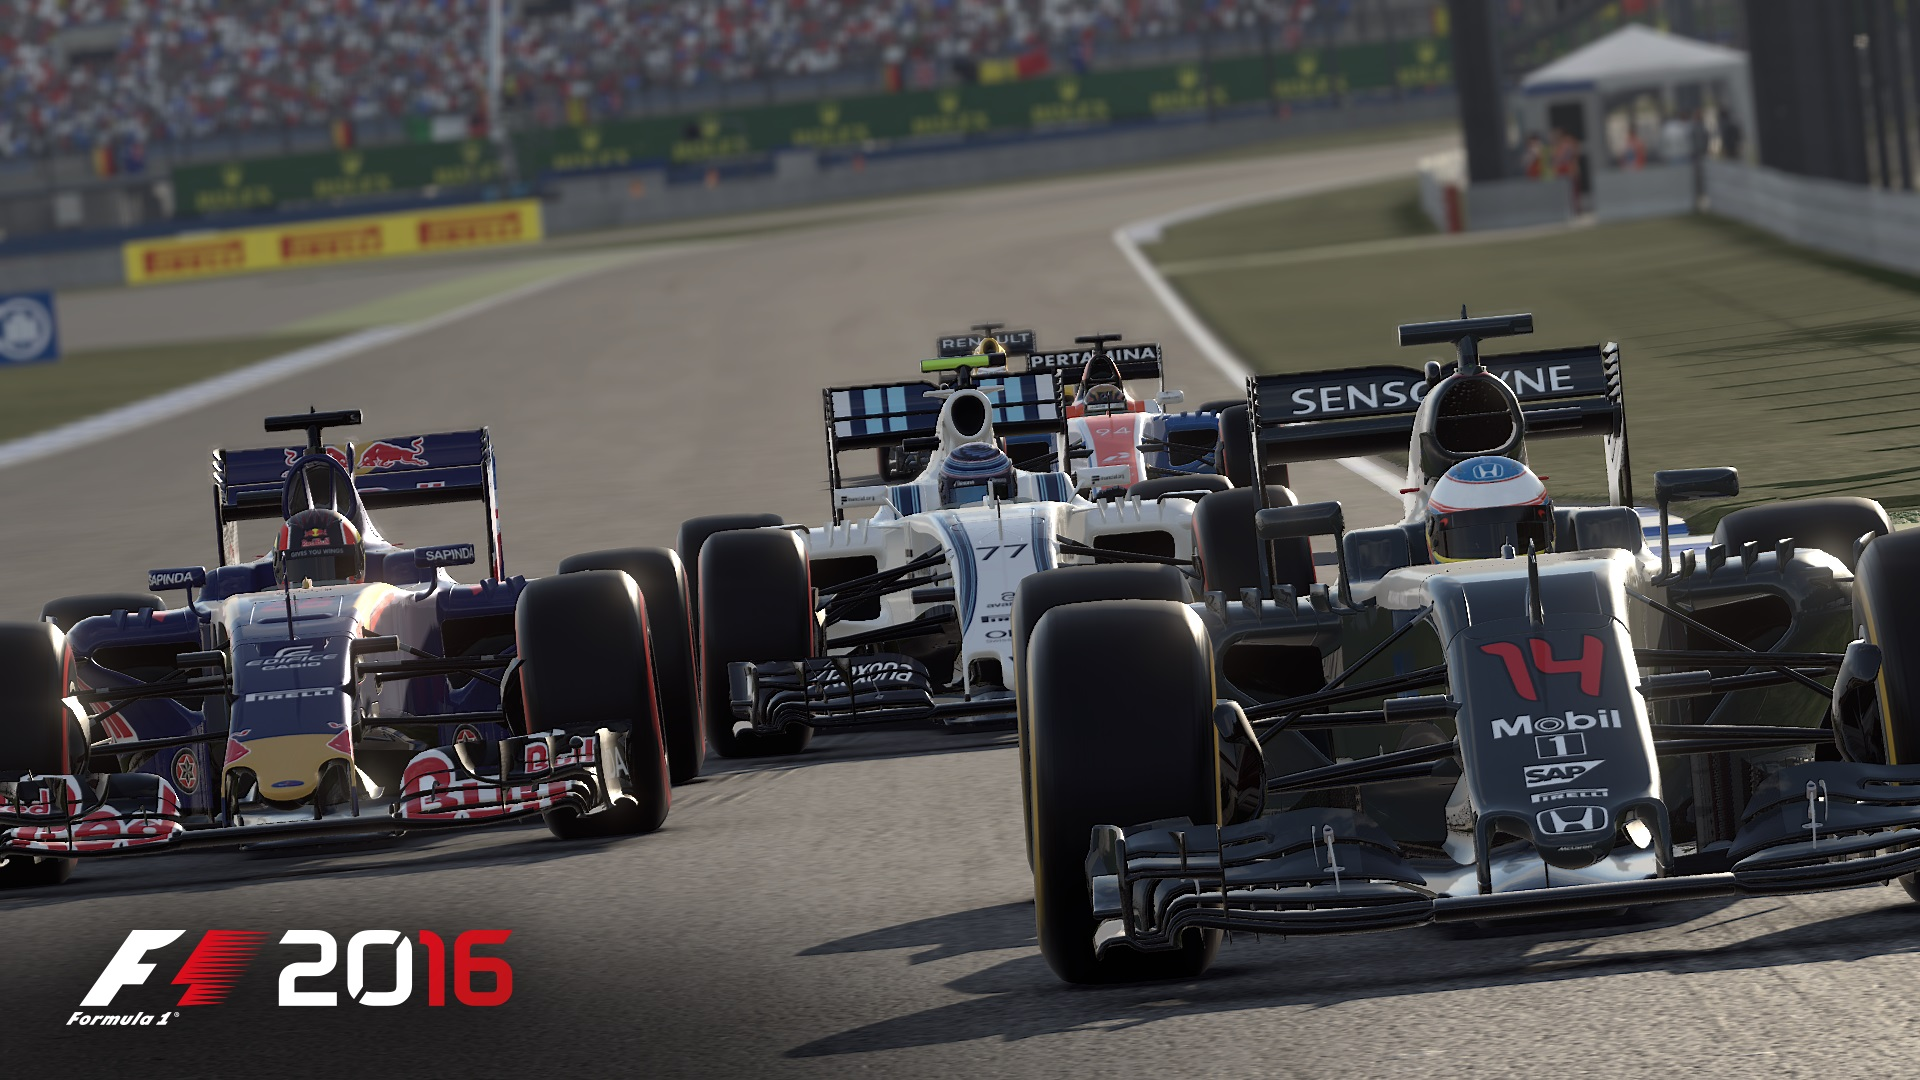 f1 2016 trailer zum karrieremodus des rennspiels das spielemagazin games mag. Black Bedroom Furniture Sets. Home Design Ideas